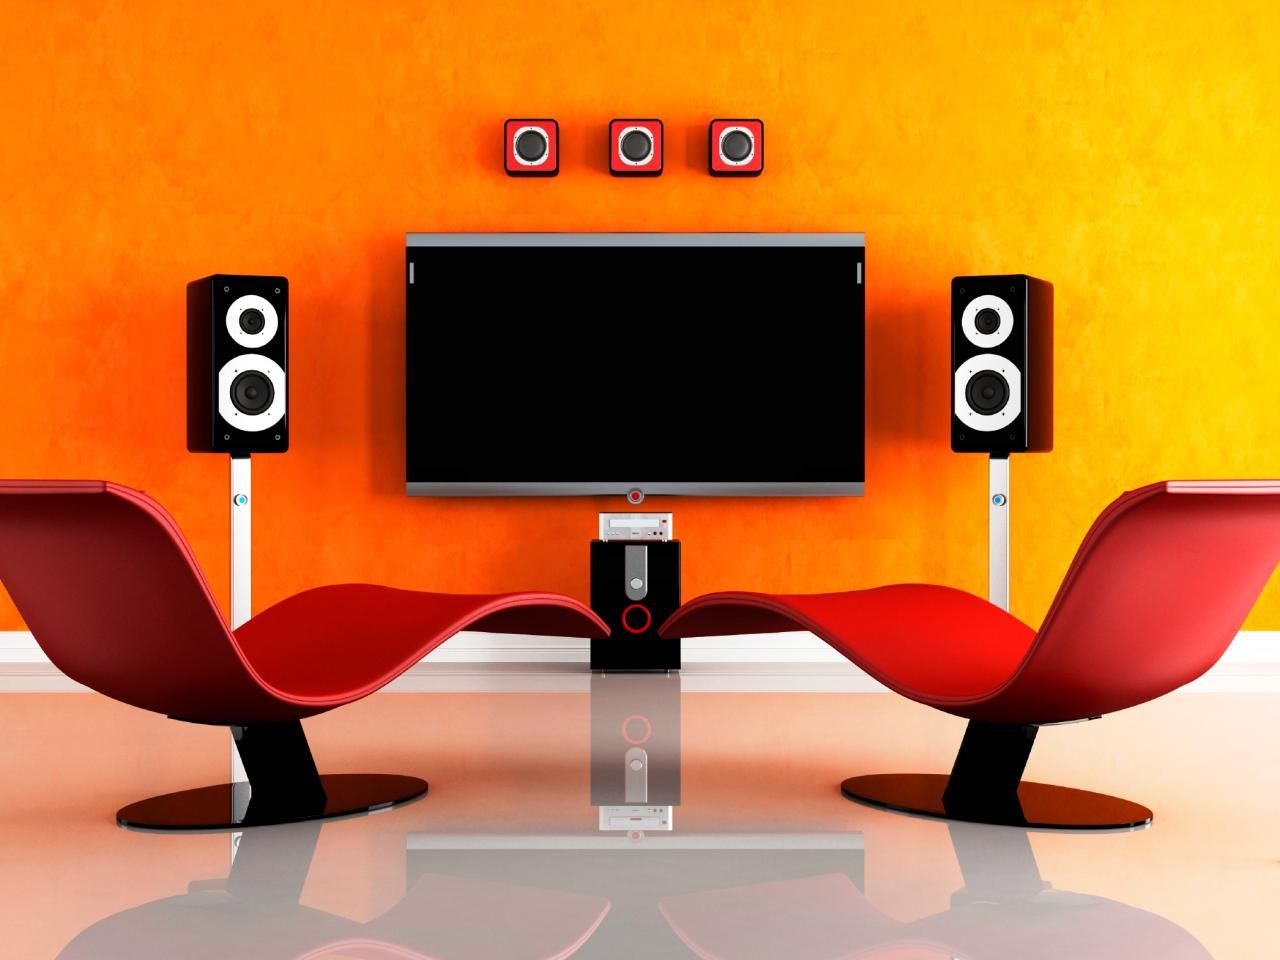 Home Theater AUDIO VIDEO    IN AUSTIN,  LAGO VISTA,  SPICEWOOD,  BEE CAVE, LAKEWAY,  DRIPPING SPRINGS, WIMBERLY, MARBLE FALLS, WEST LAKE HILLS,  FREDERICKSBURG , HORSESHOE BAY,  BELTON